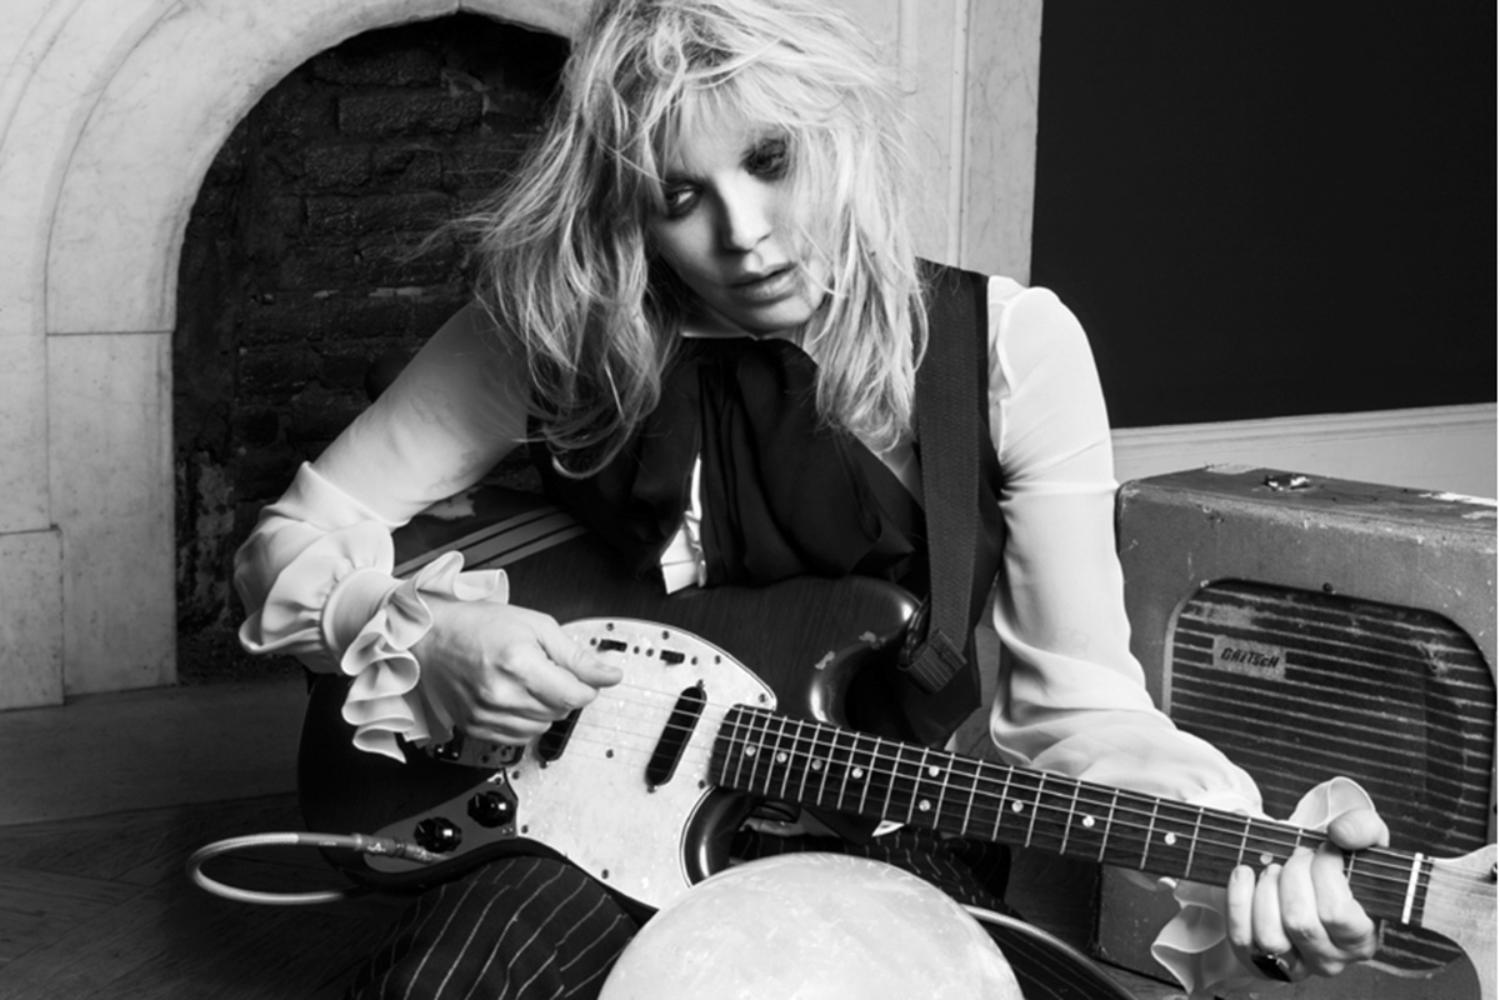 Courtney Love covers Radiohead's 'Creep'